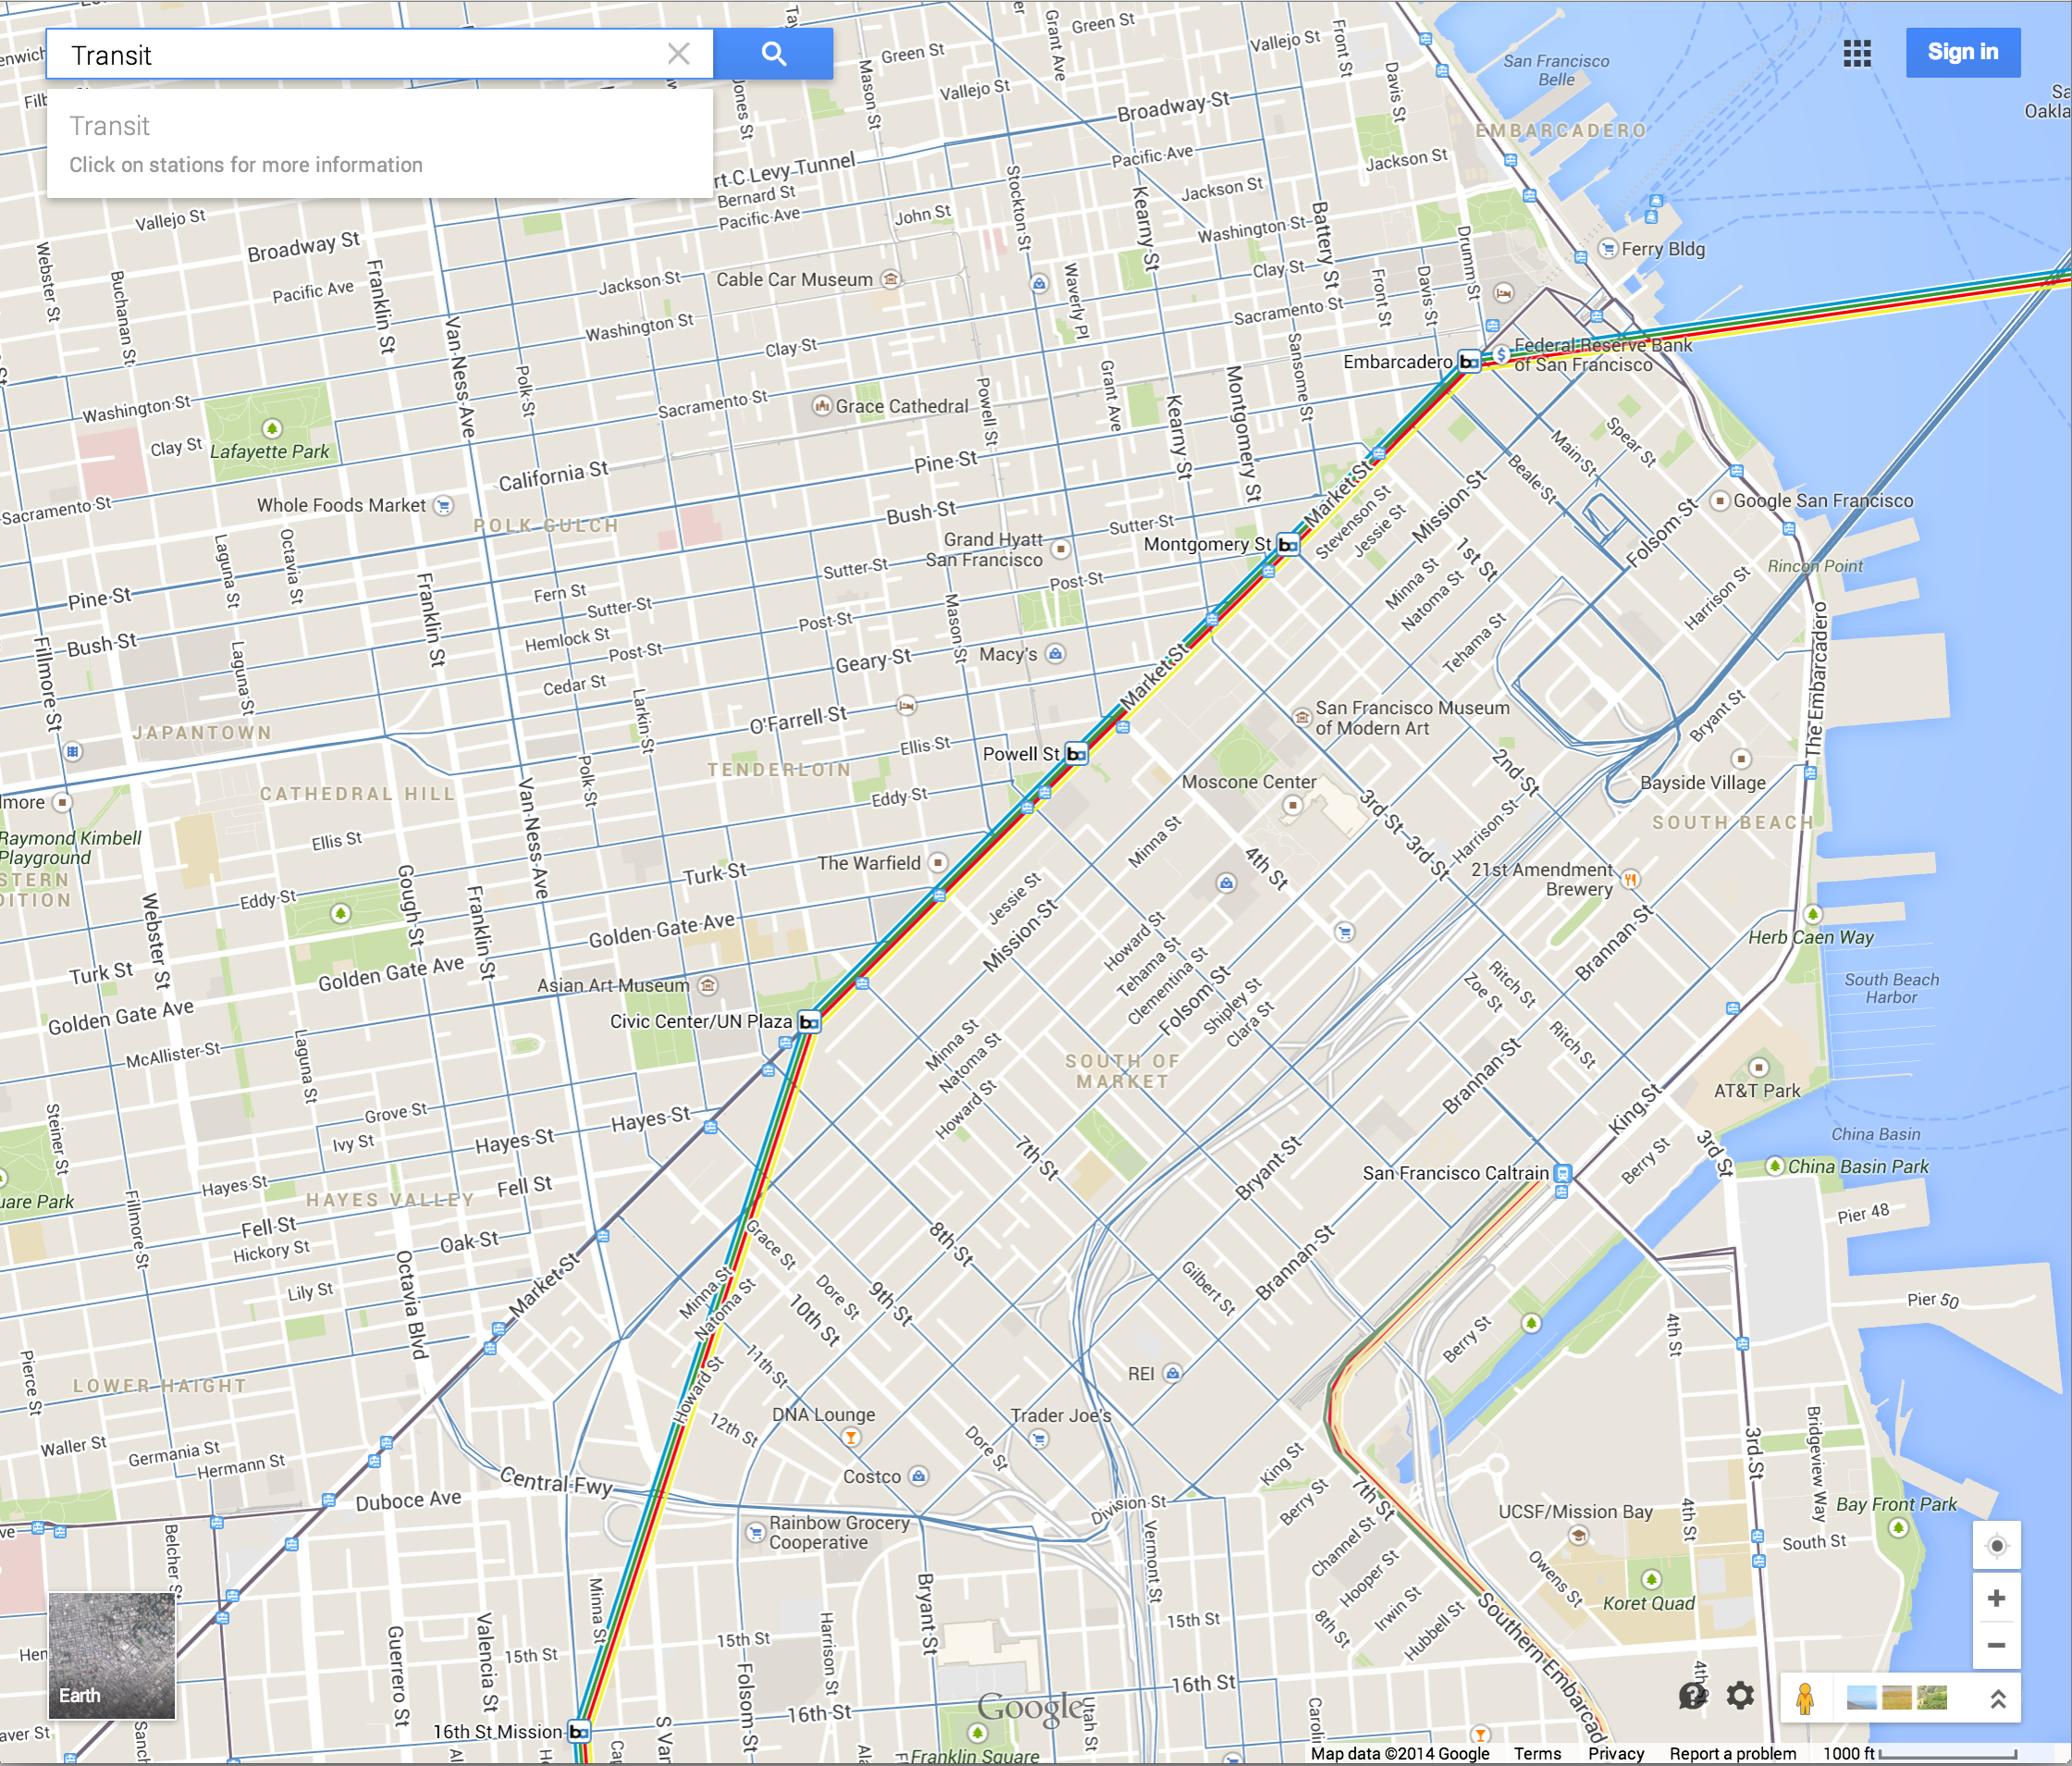 Nyc Subway Map Google Map.My Favorite Regional Transit Maps